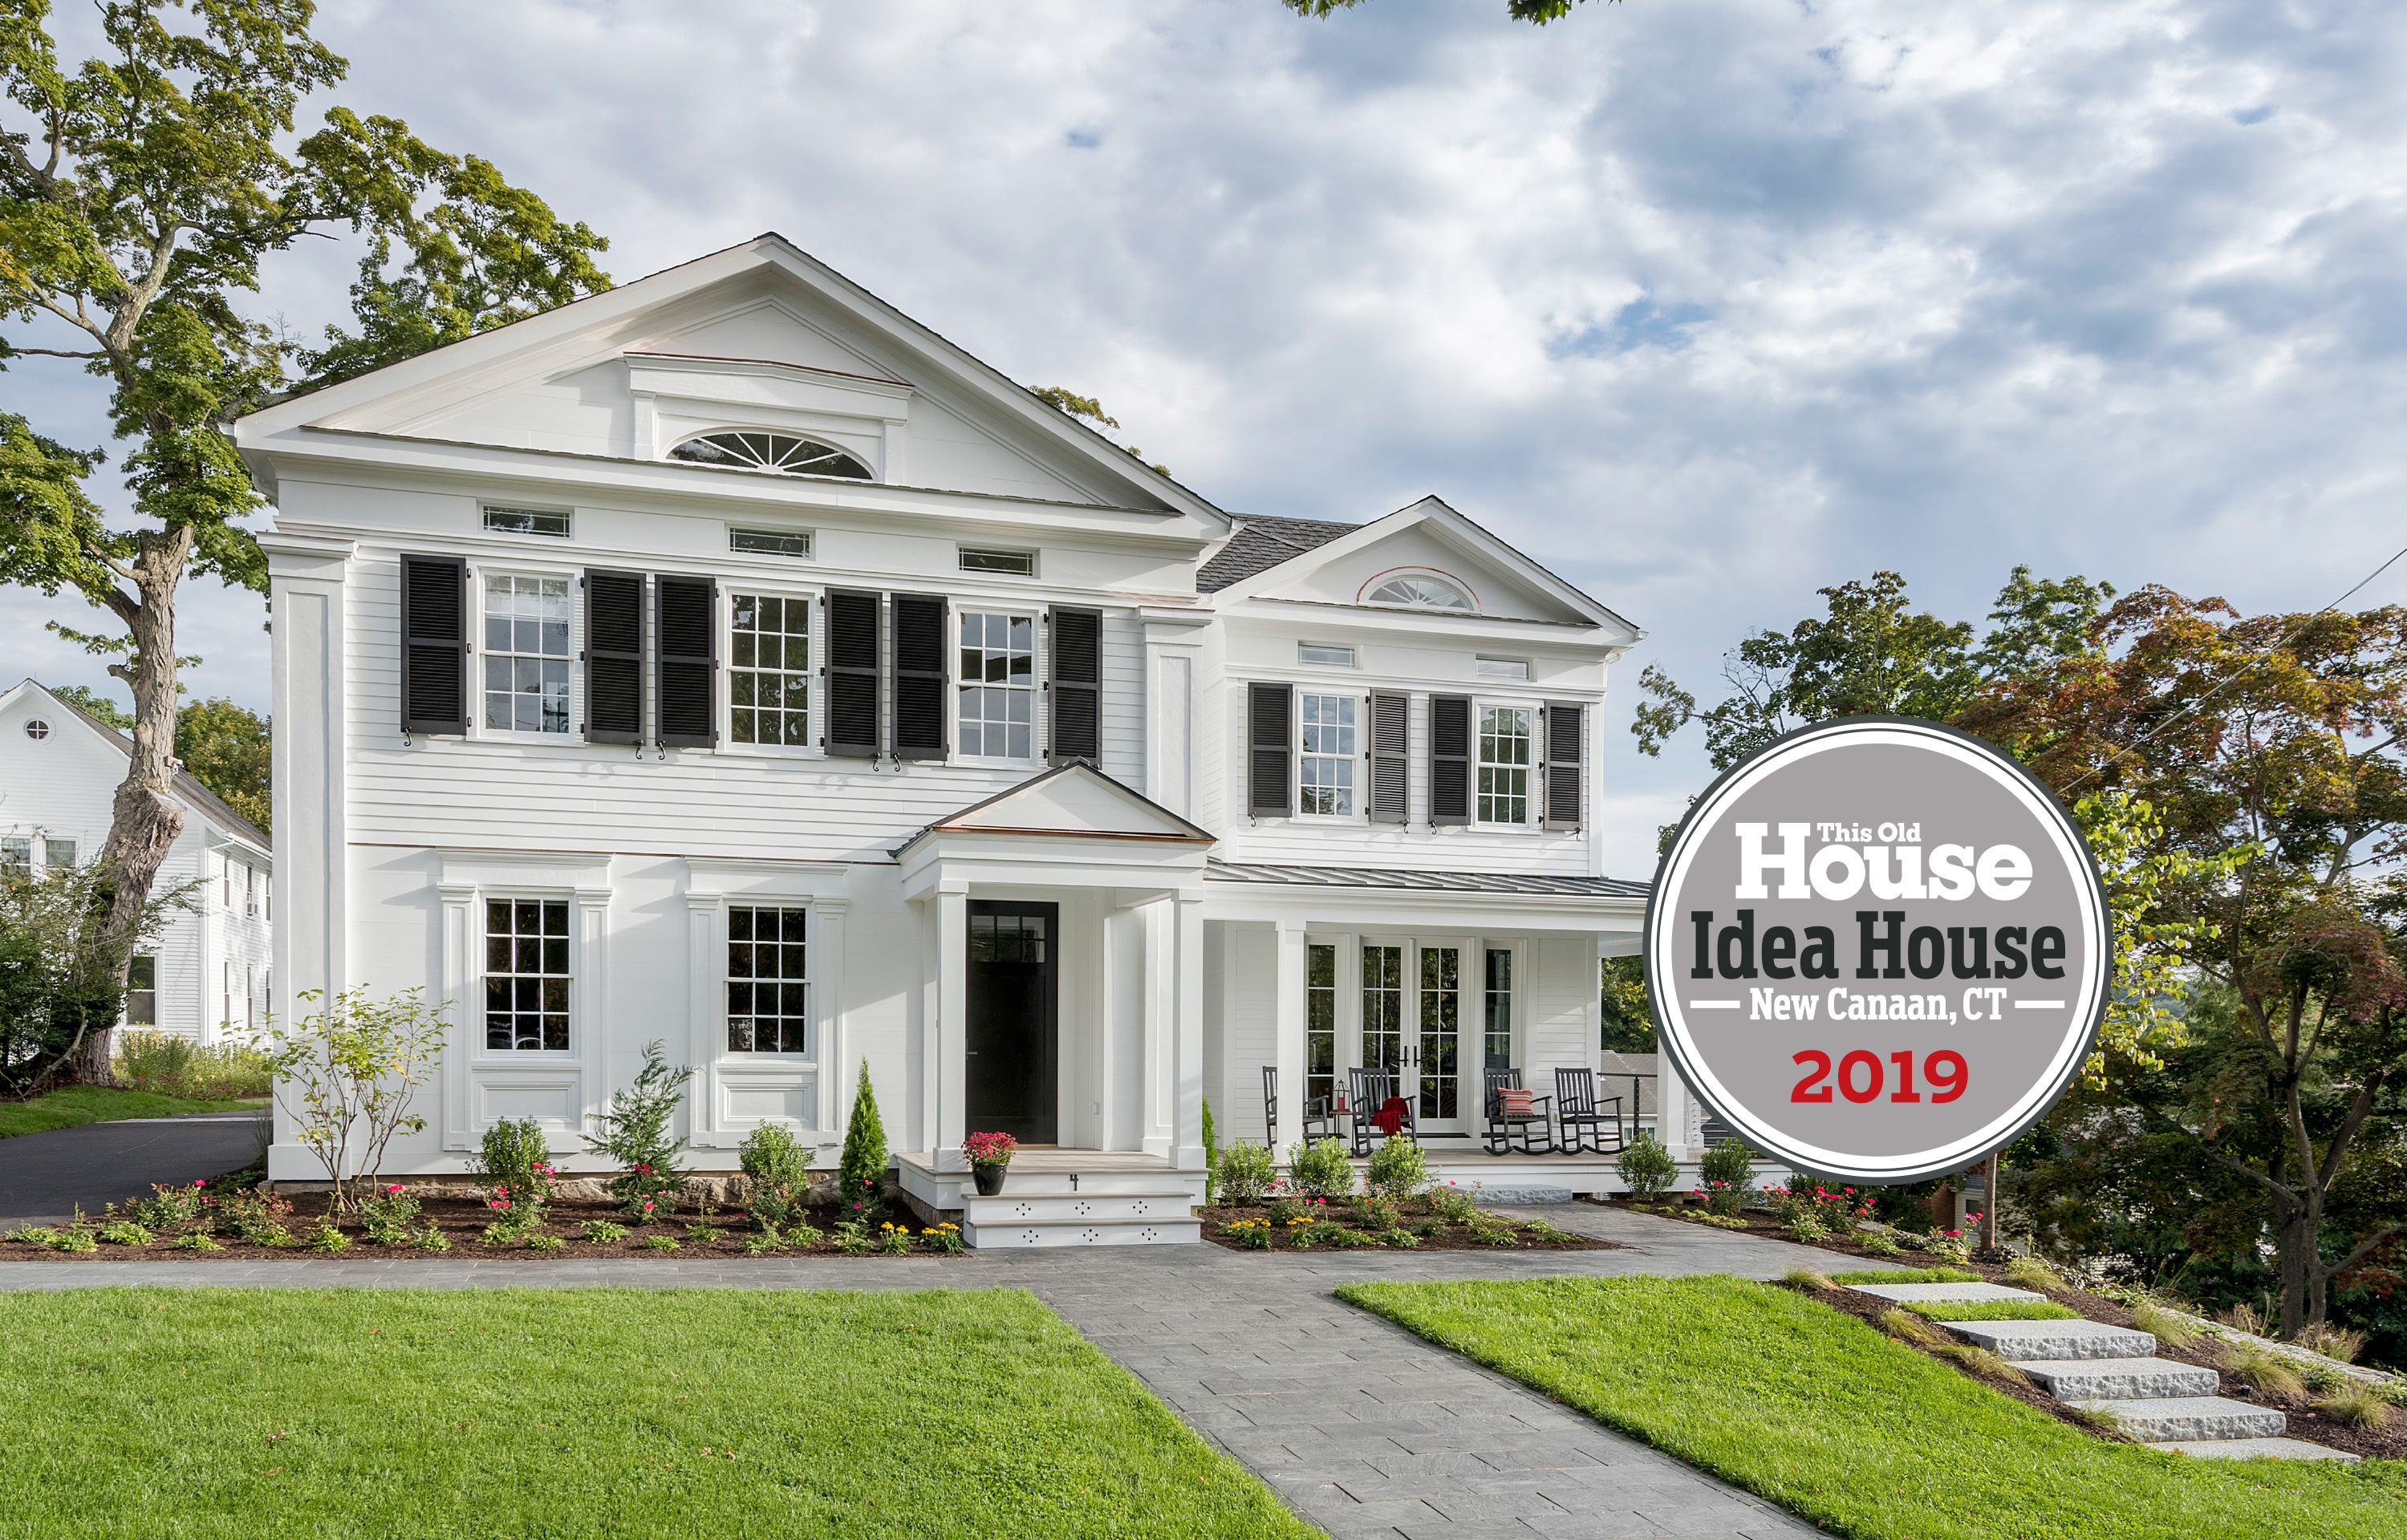 Idea House 2019, New Canaan, front exterior with logo